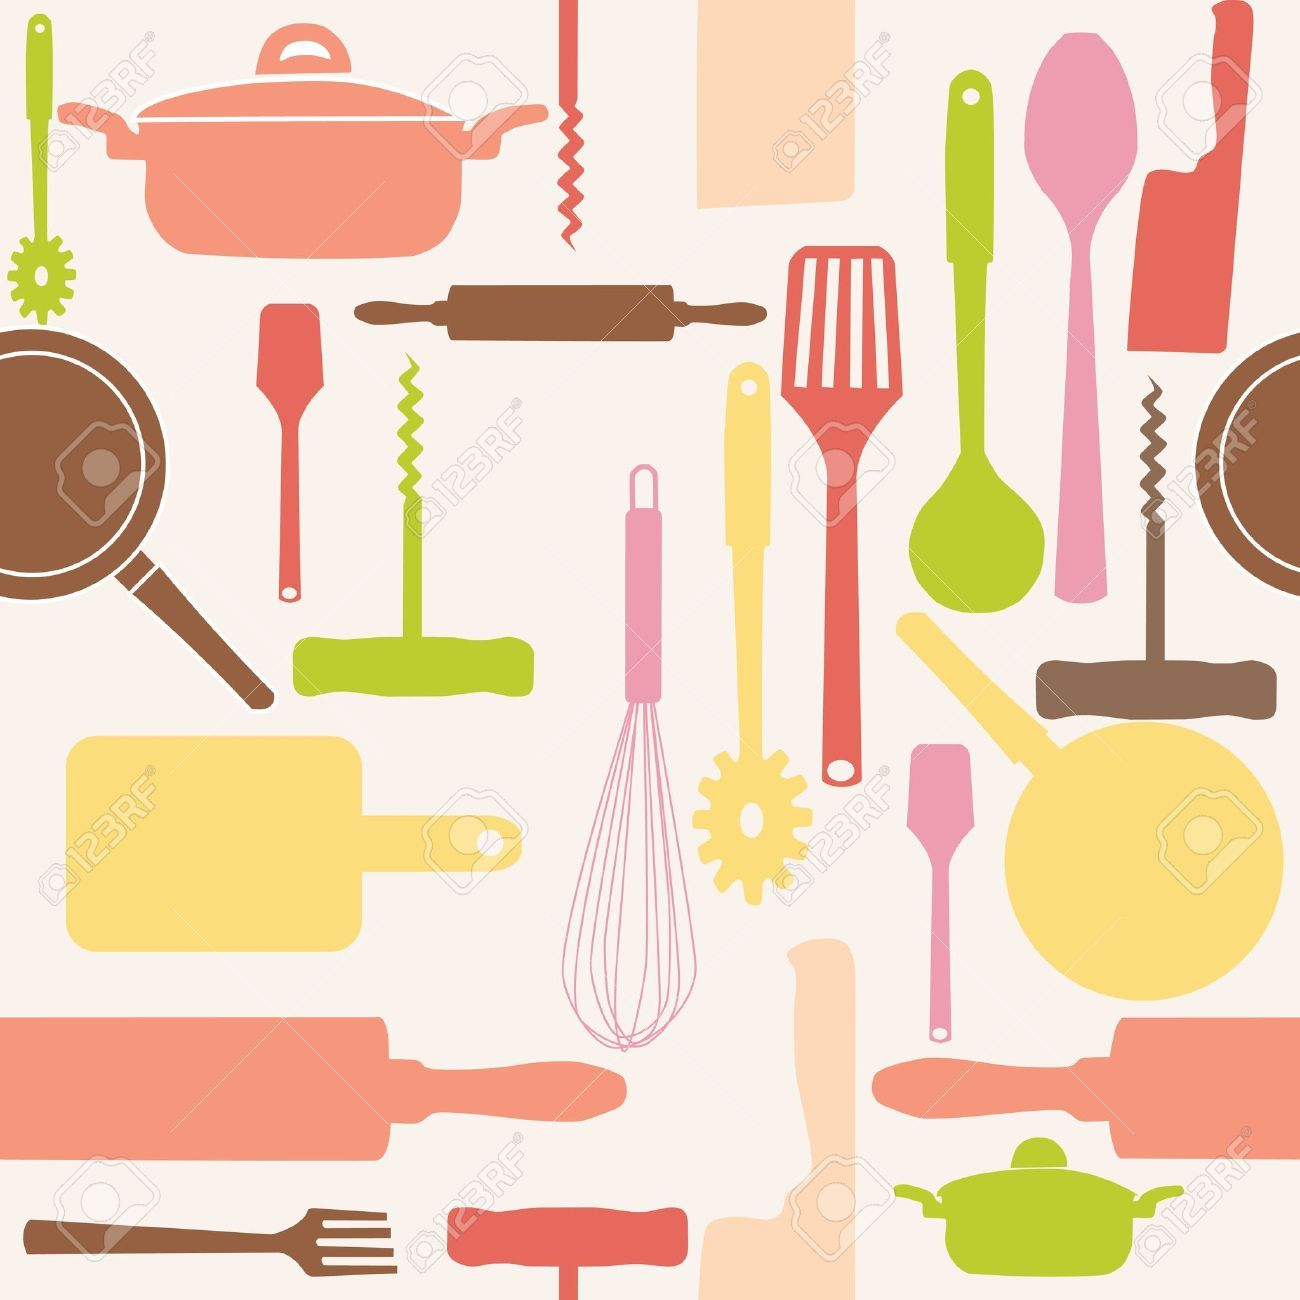 Kitchen Utensils Names And Pictures Google Search Utensils